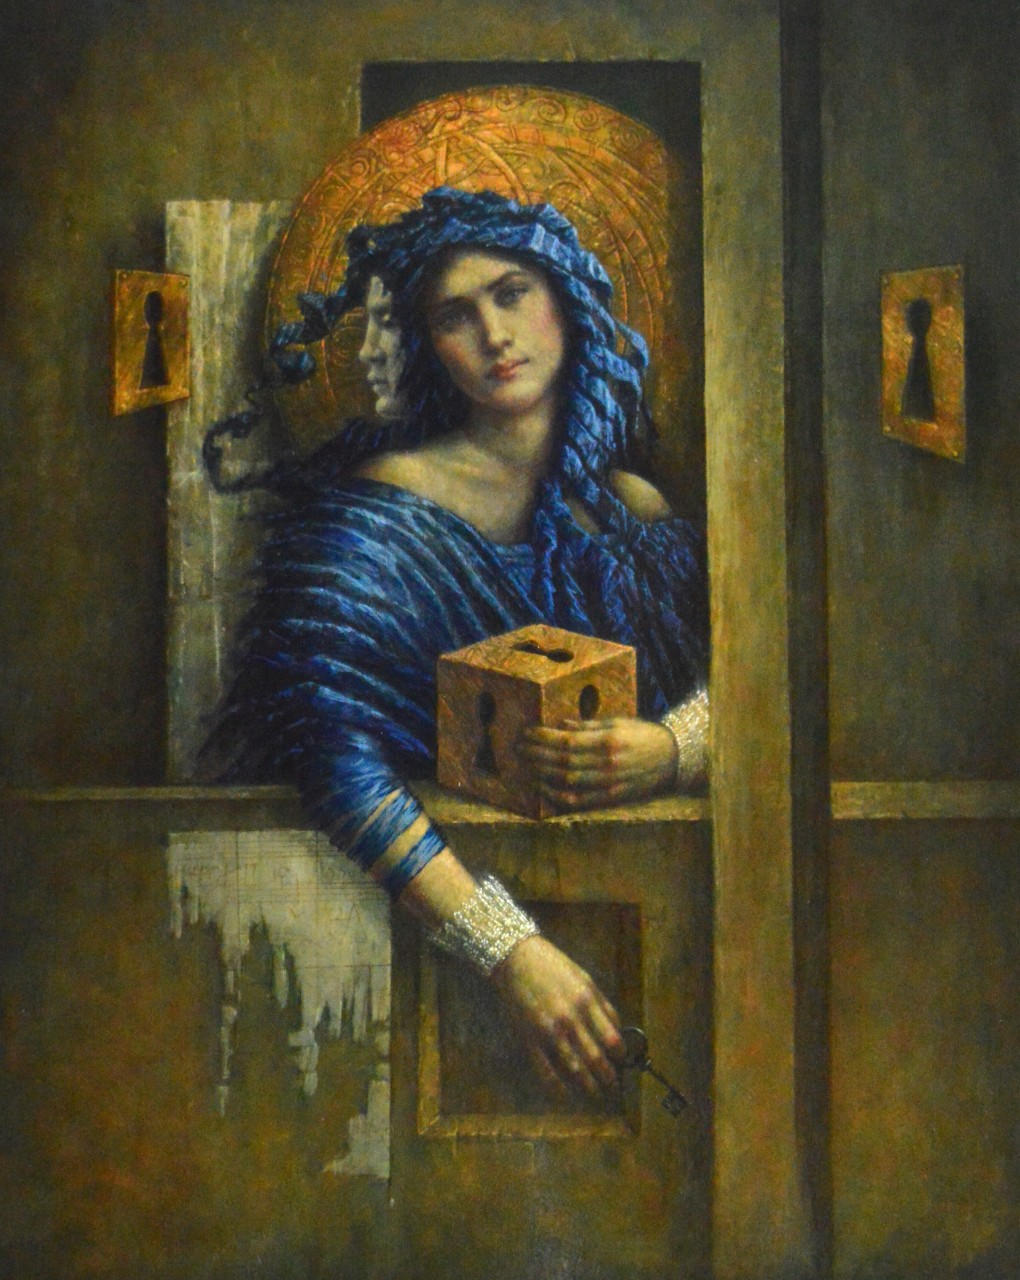 Jake Baddeley - Out of the Box - oil on wood panel - 80 x 60 cm - 2020